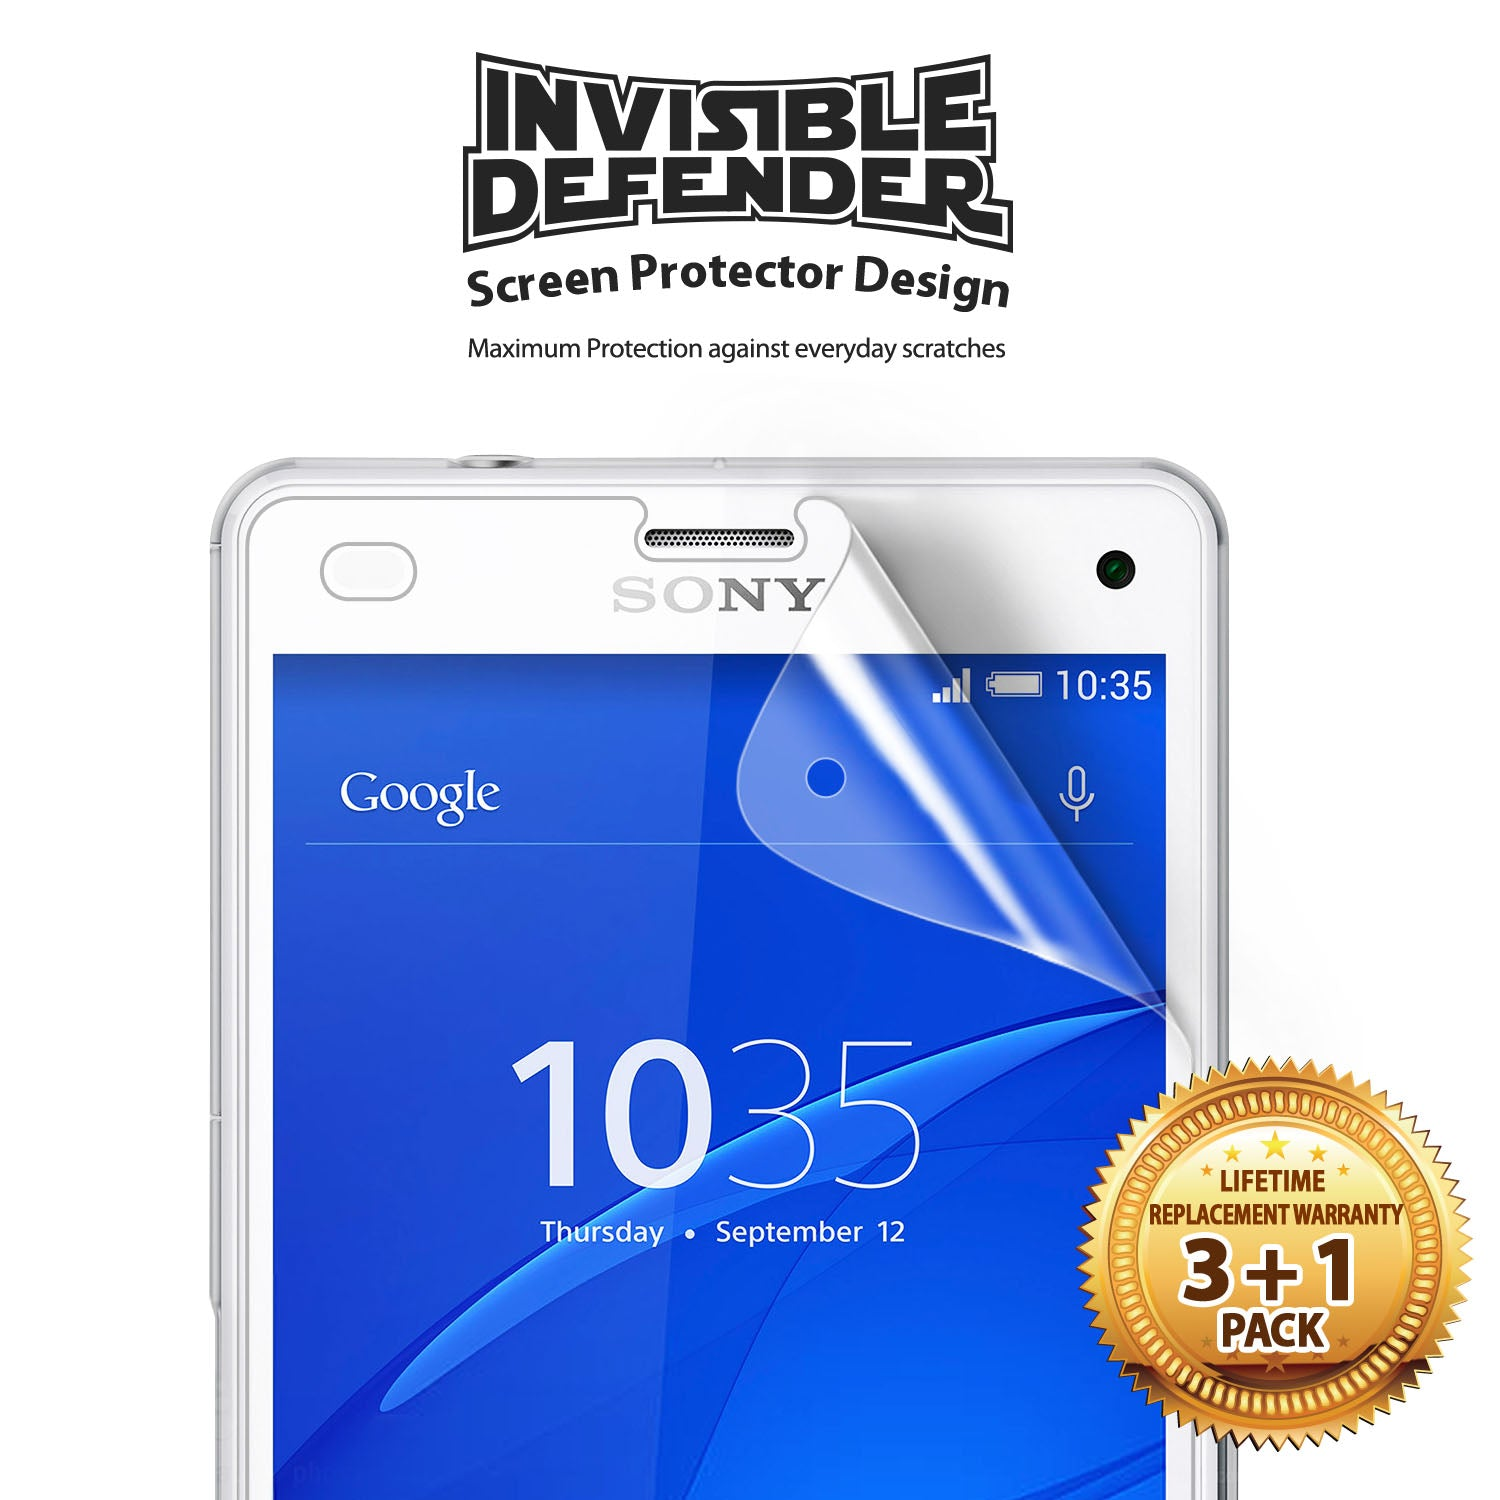 ringke invisible defender made for sony xperia z3 compact